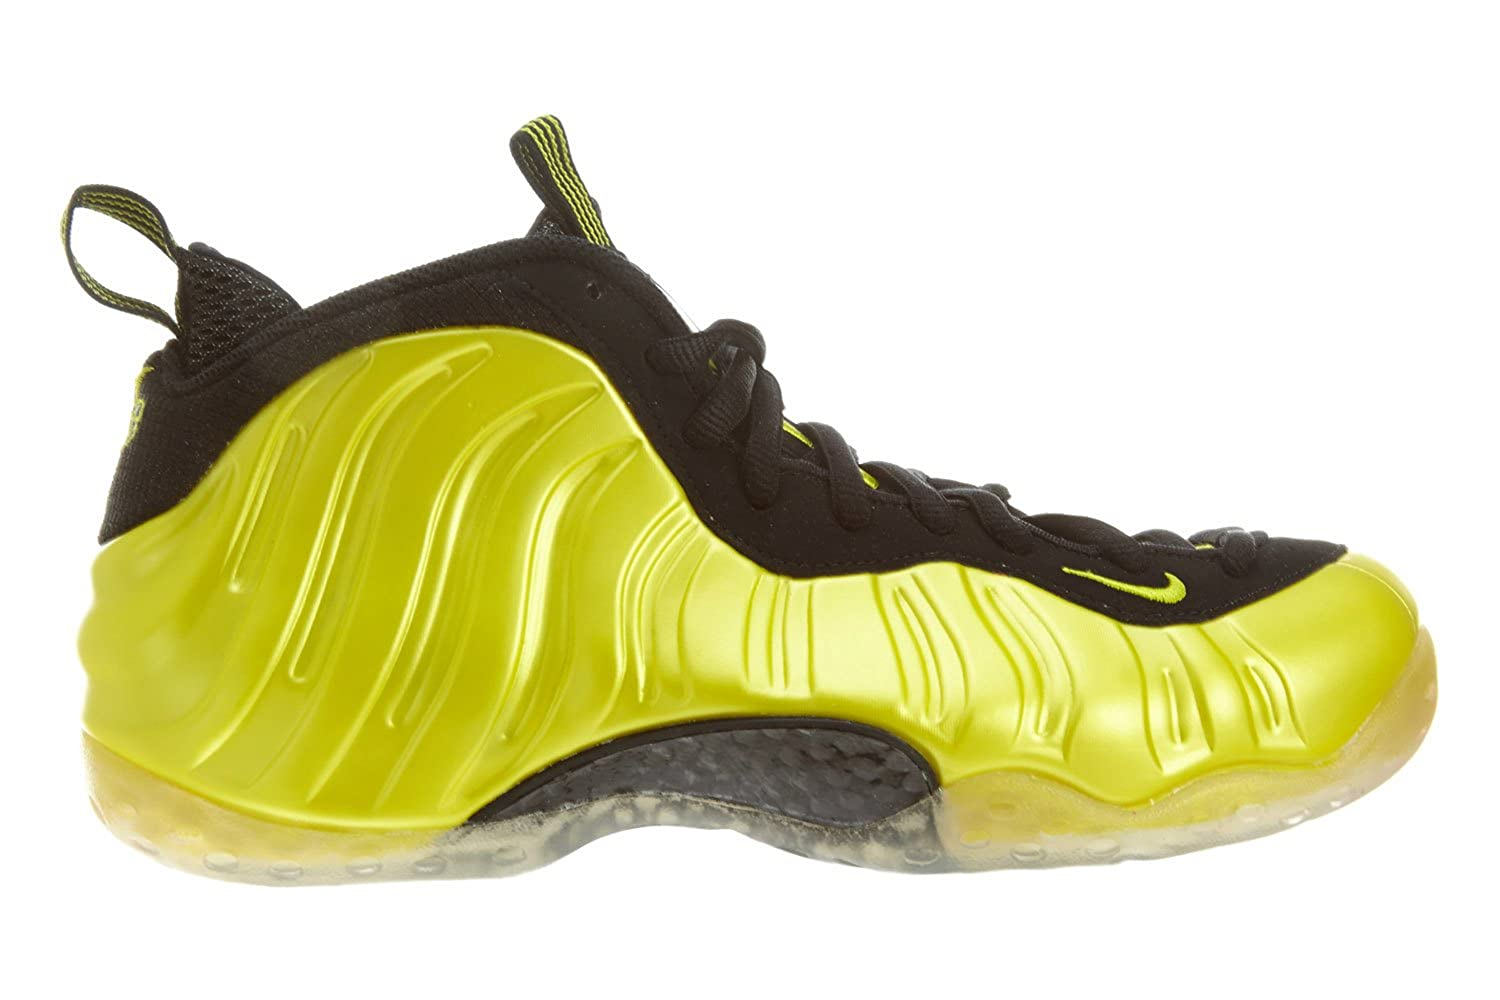 Air Foamposite One 'ELECTROLIME' - 314996-330 - Size 7 -